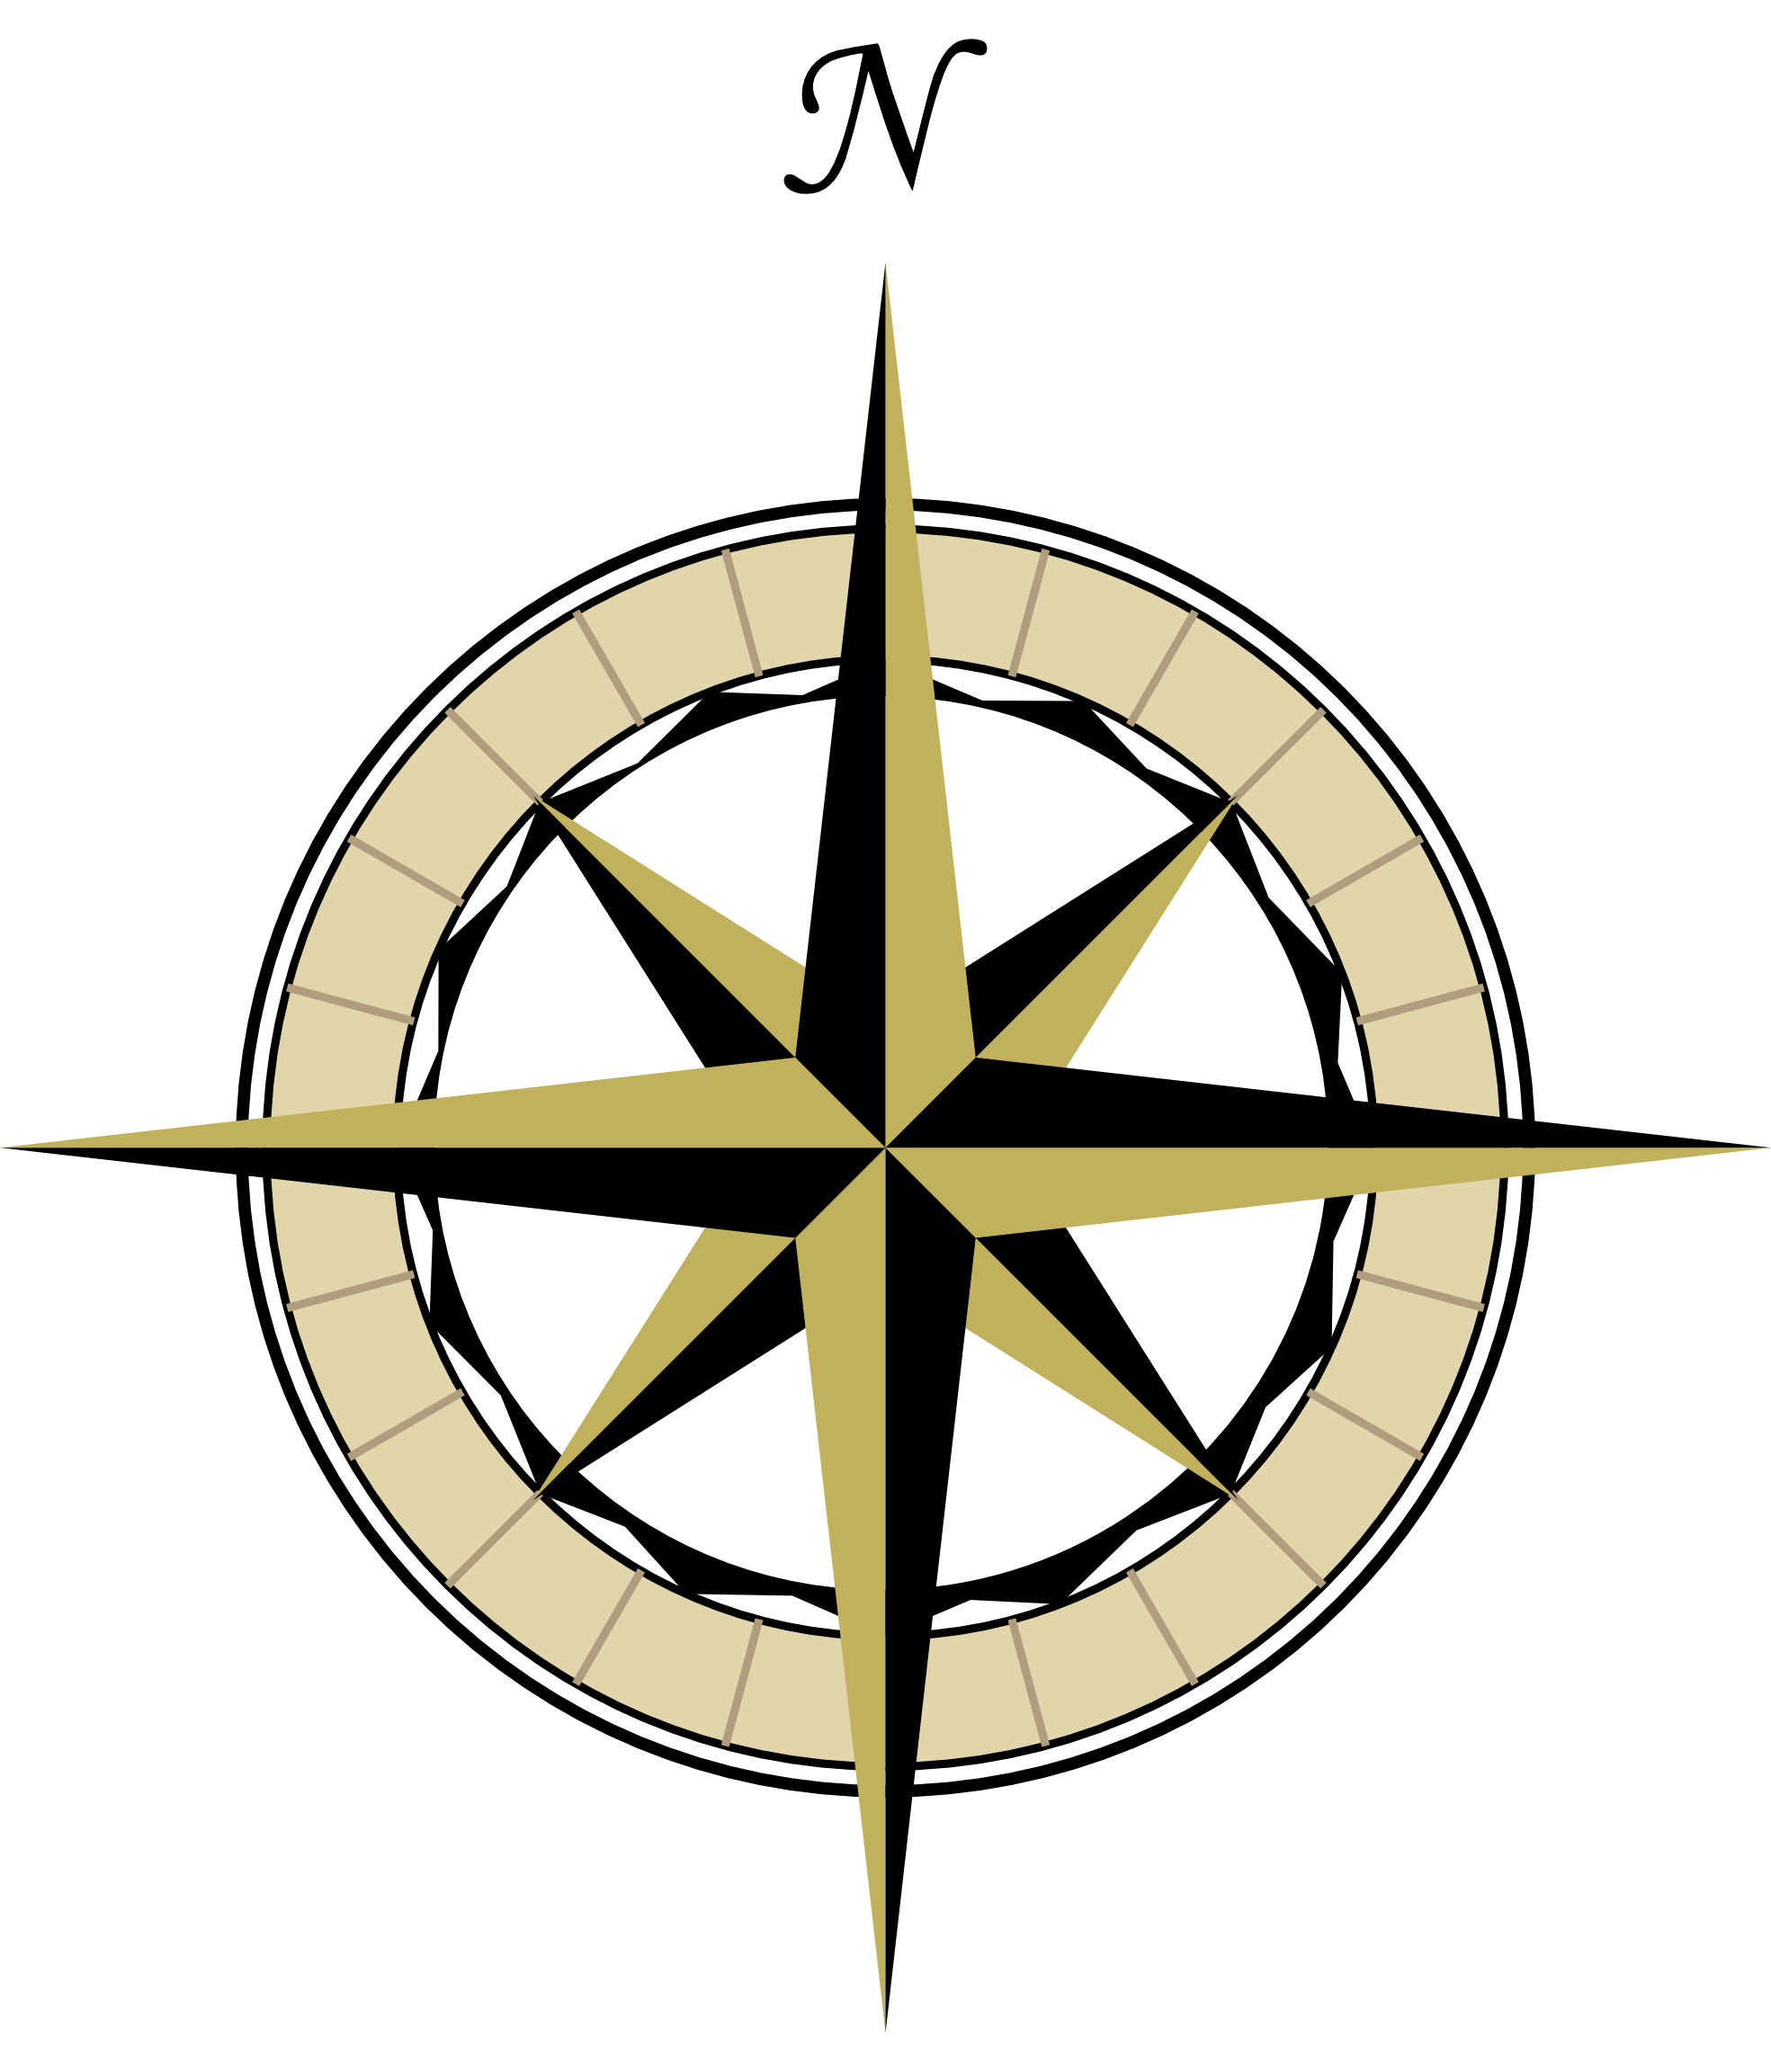 Map compass png. Clipart transparentpng download free